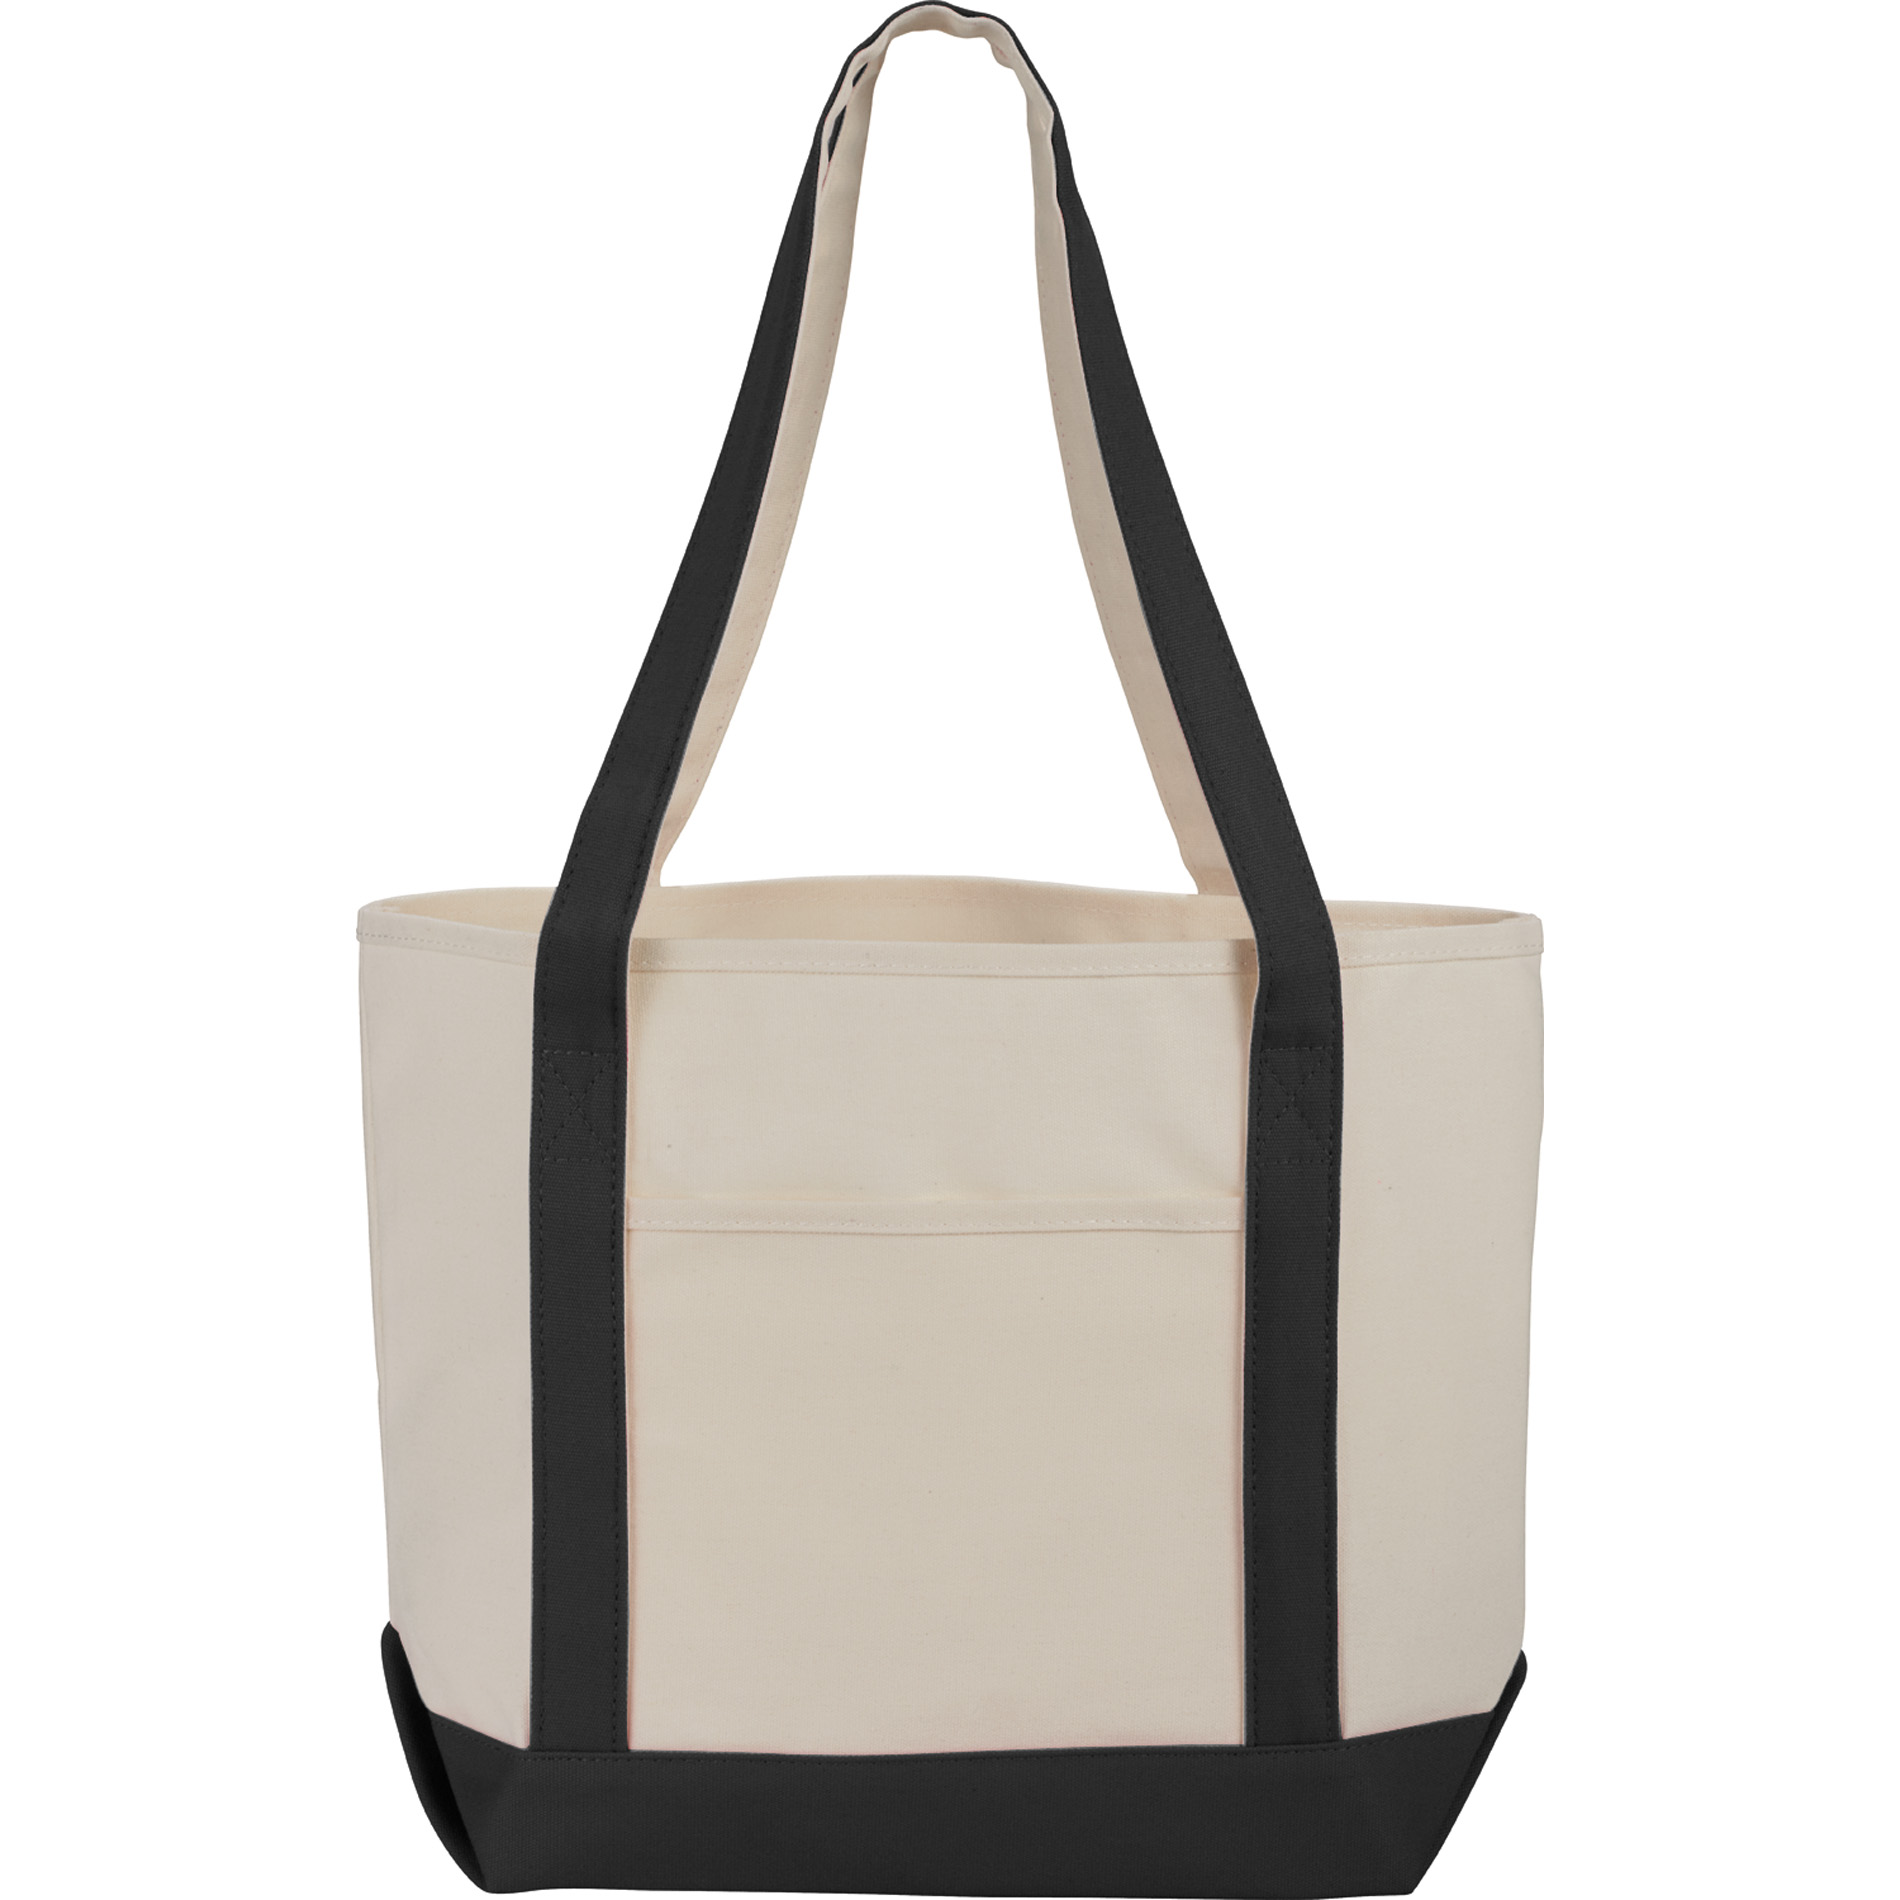 LEEDS SM-7216 - Classic 12oz Cotton Canvas Boat Tote